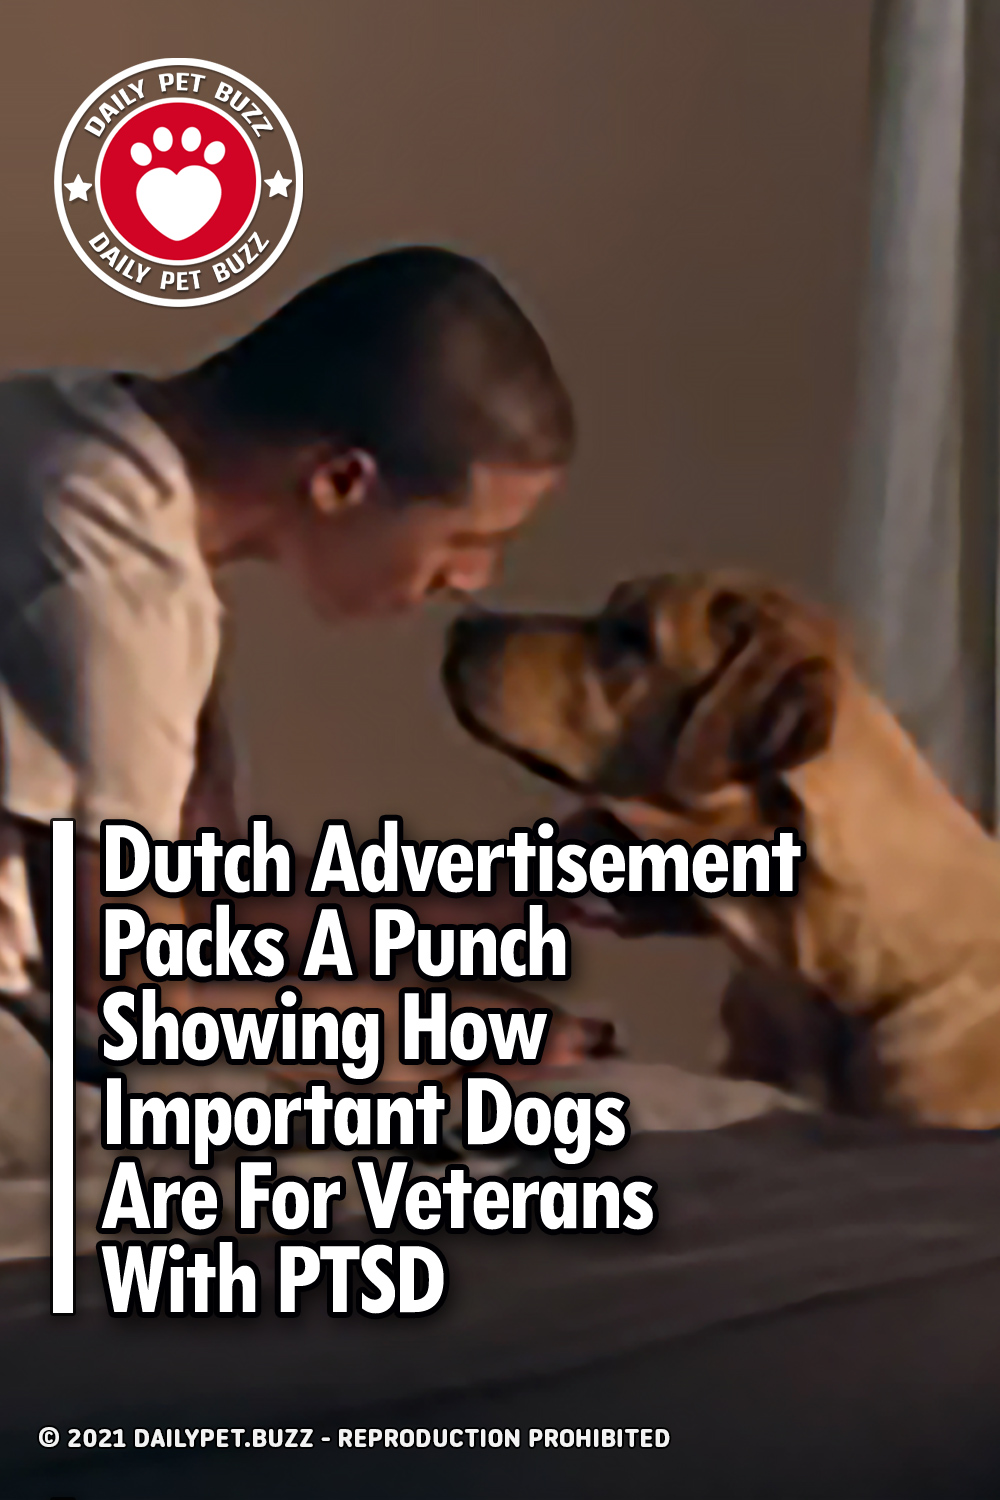 Dutch Advertisement Packs A Punch Showing How Important Dogs Are For Veterans With PTSD